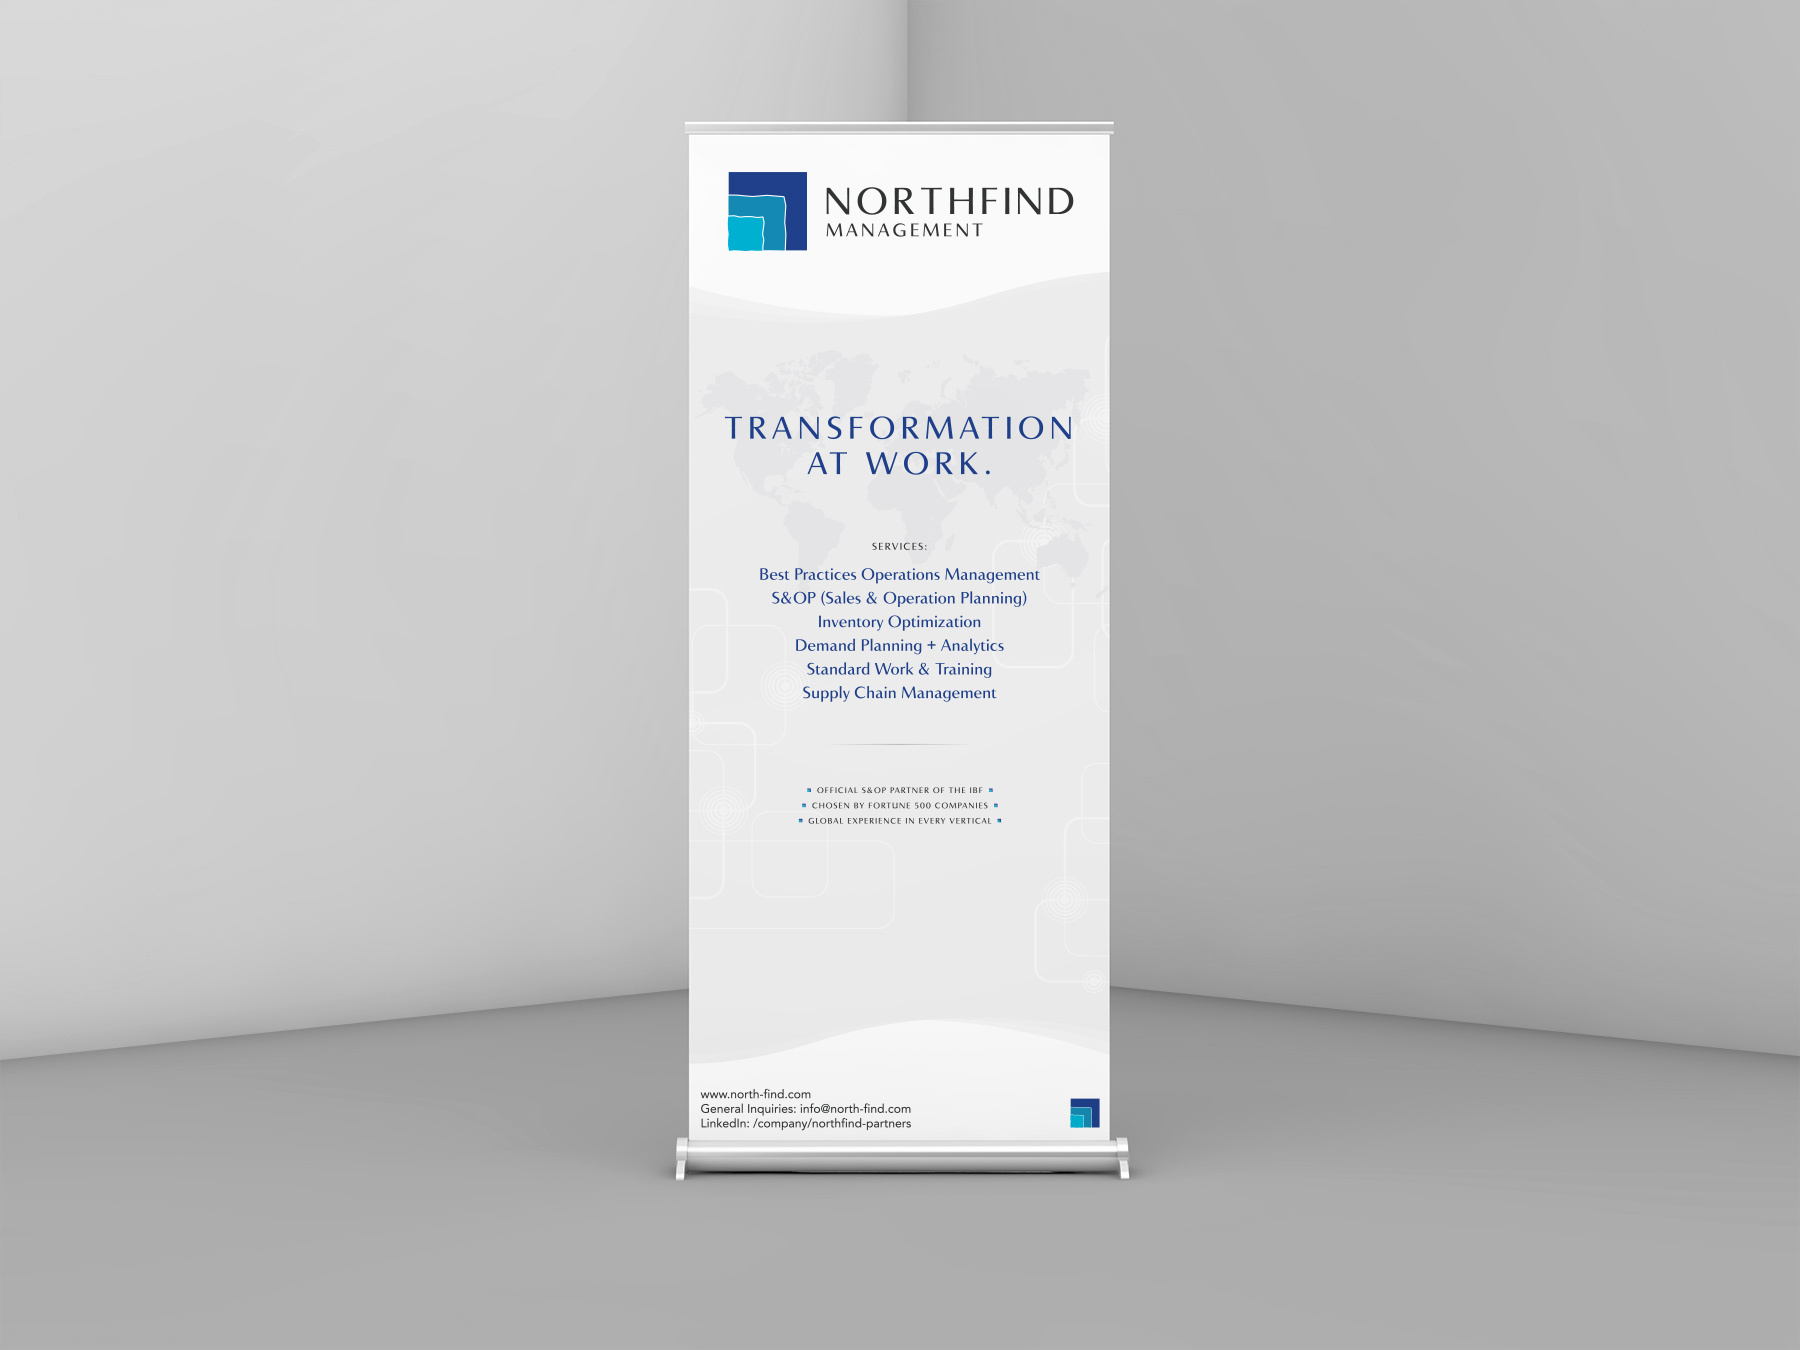 NorthFind Management - Banner Roll Up